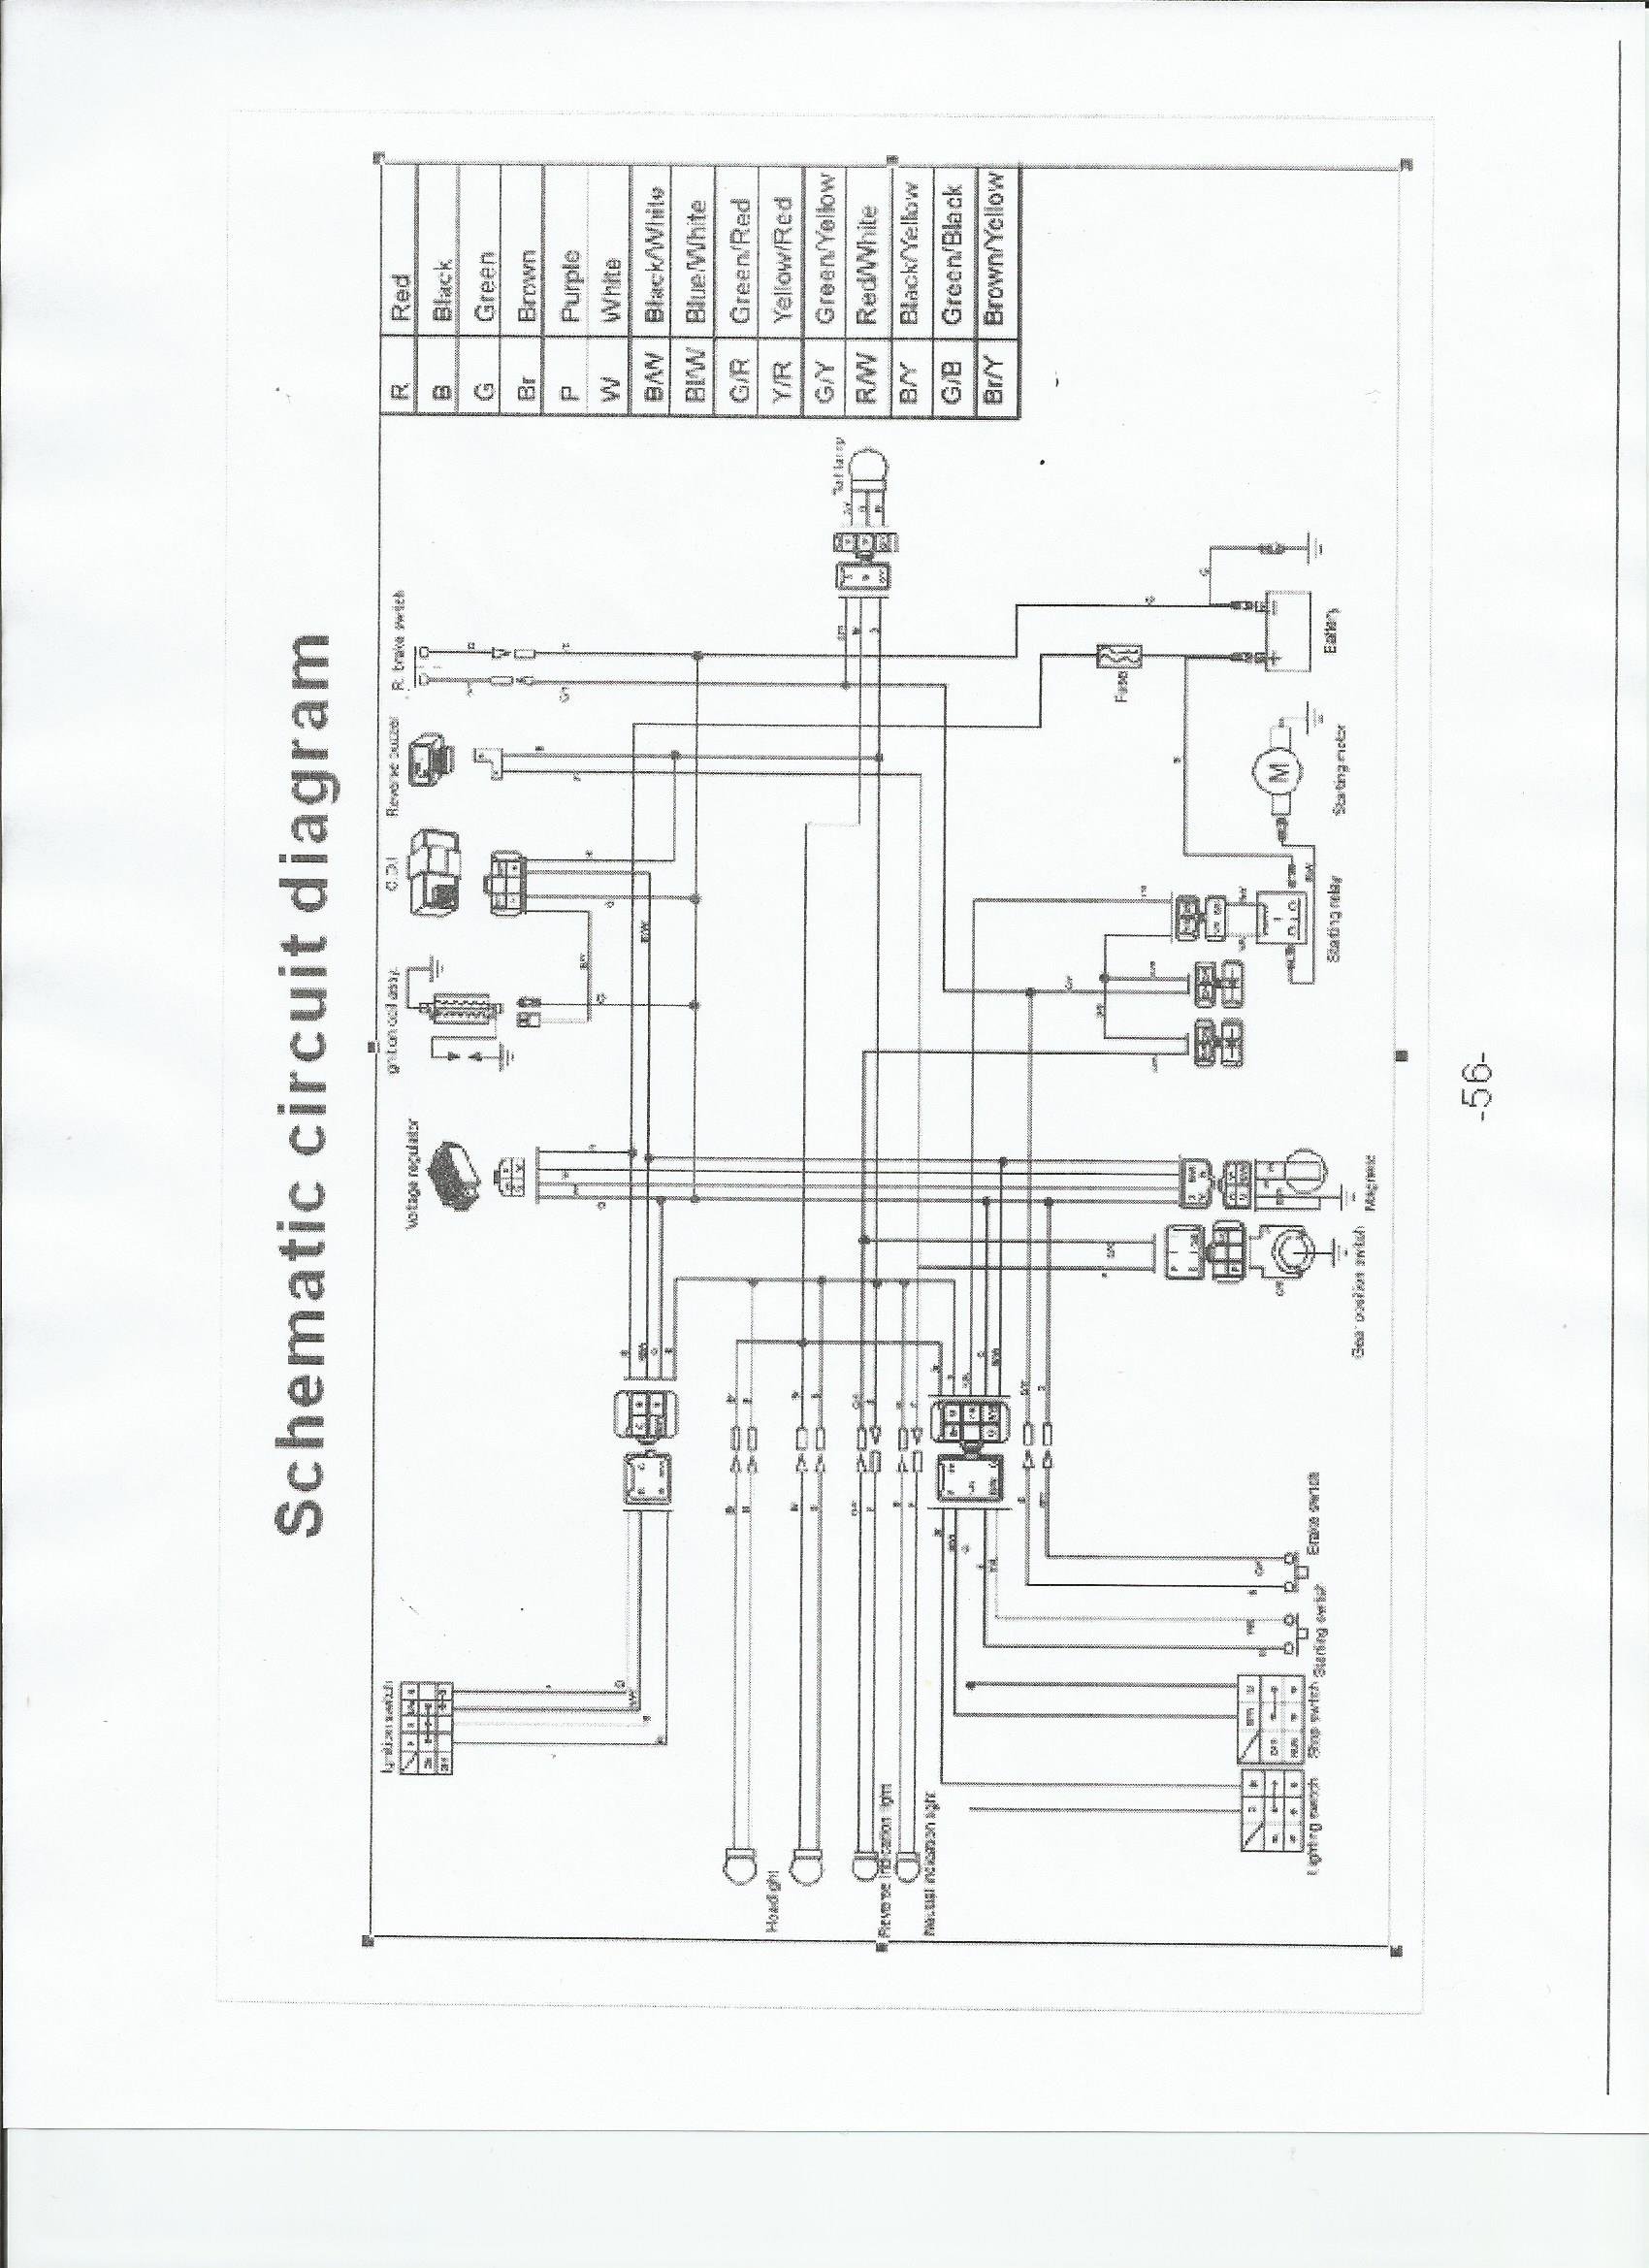 TaoTao Mini And Youth ATV Wiring Schematic – FamilyGoKarts Support